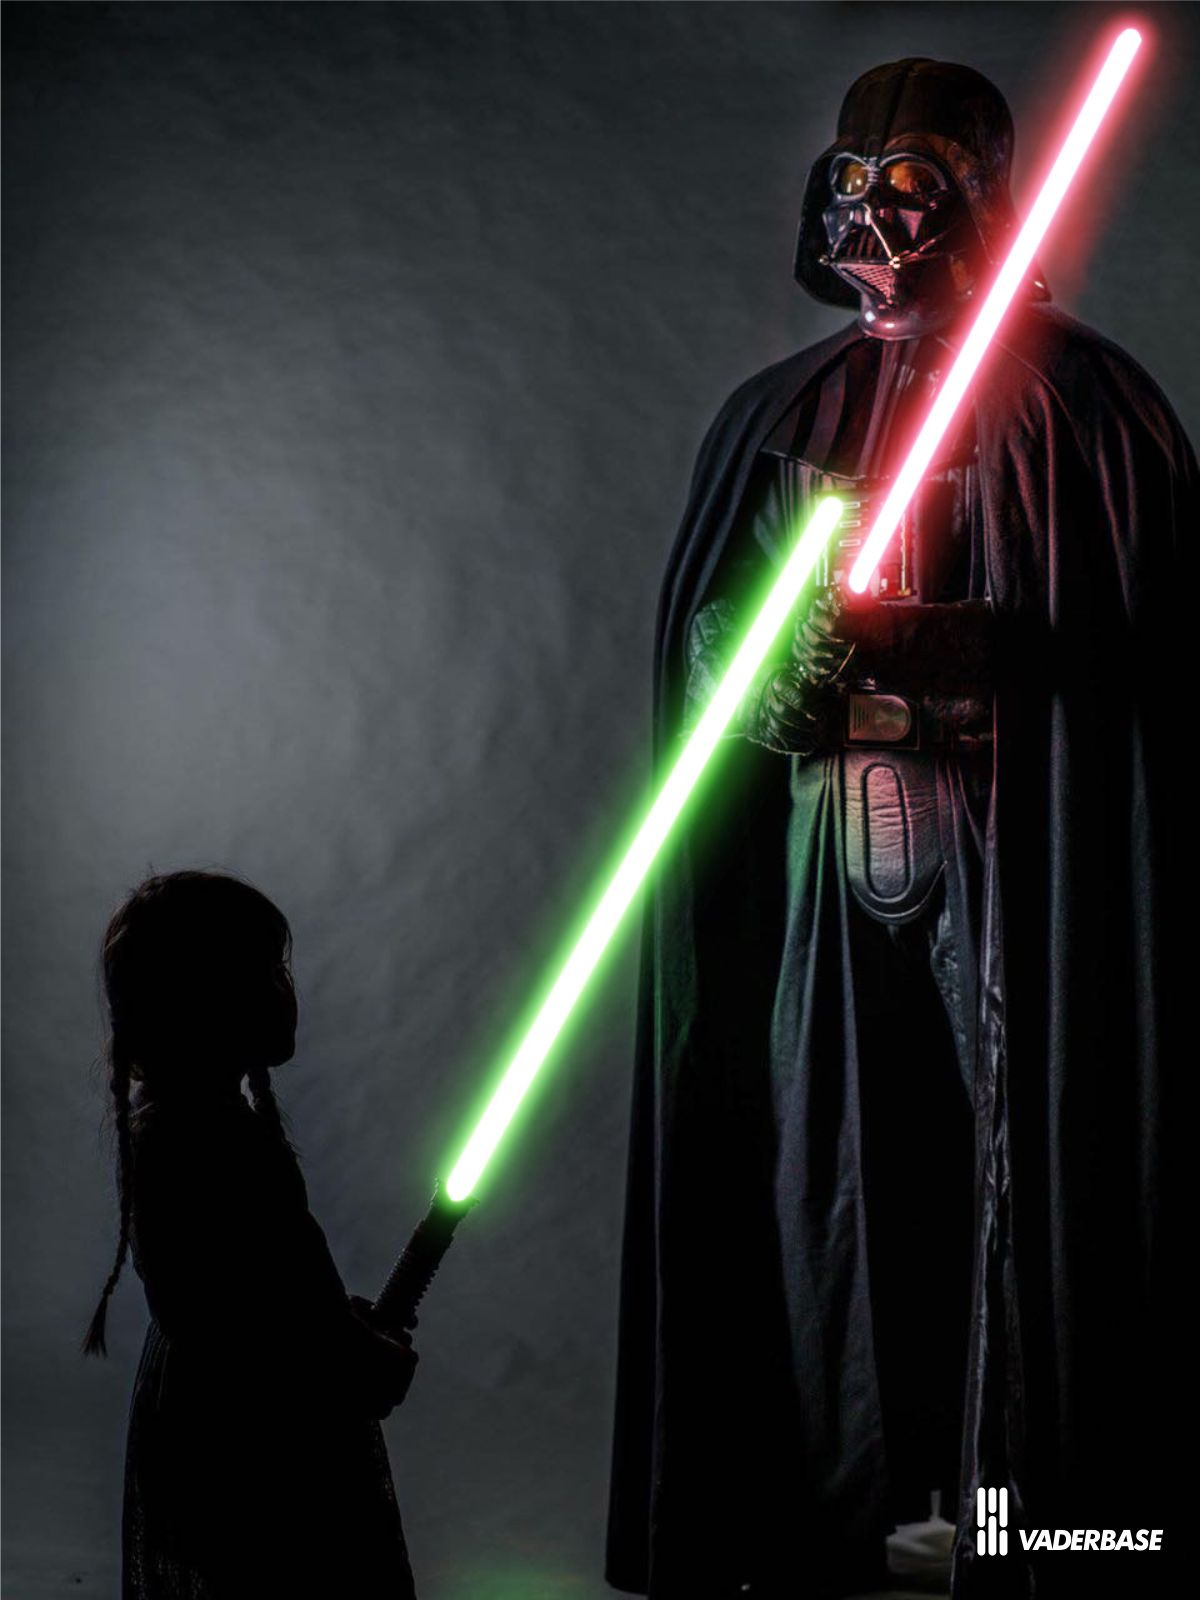 vaderbase.com/Bilder/blog_2018/the_empire_strikes_back_vader_kid.jpg